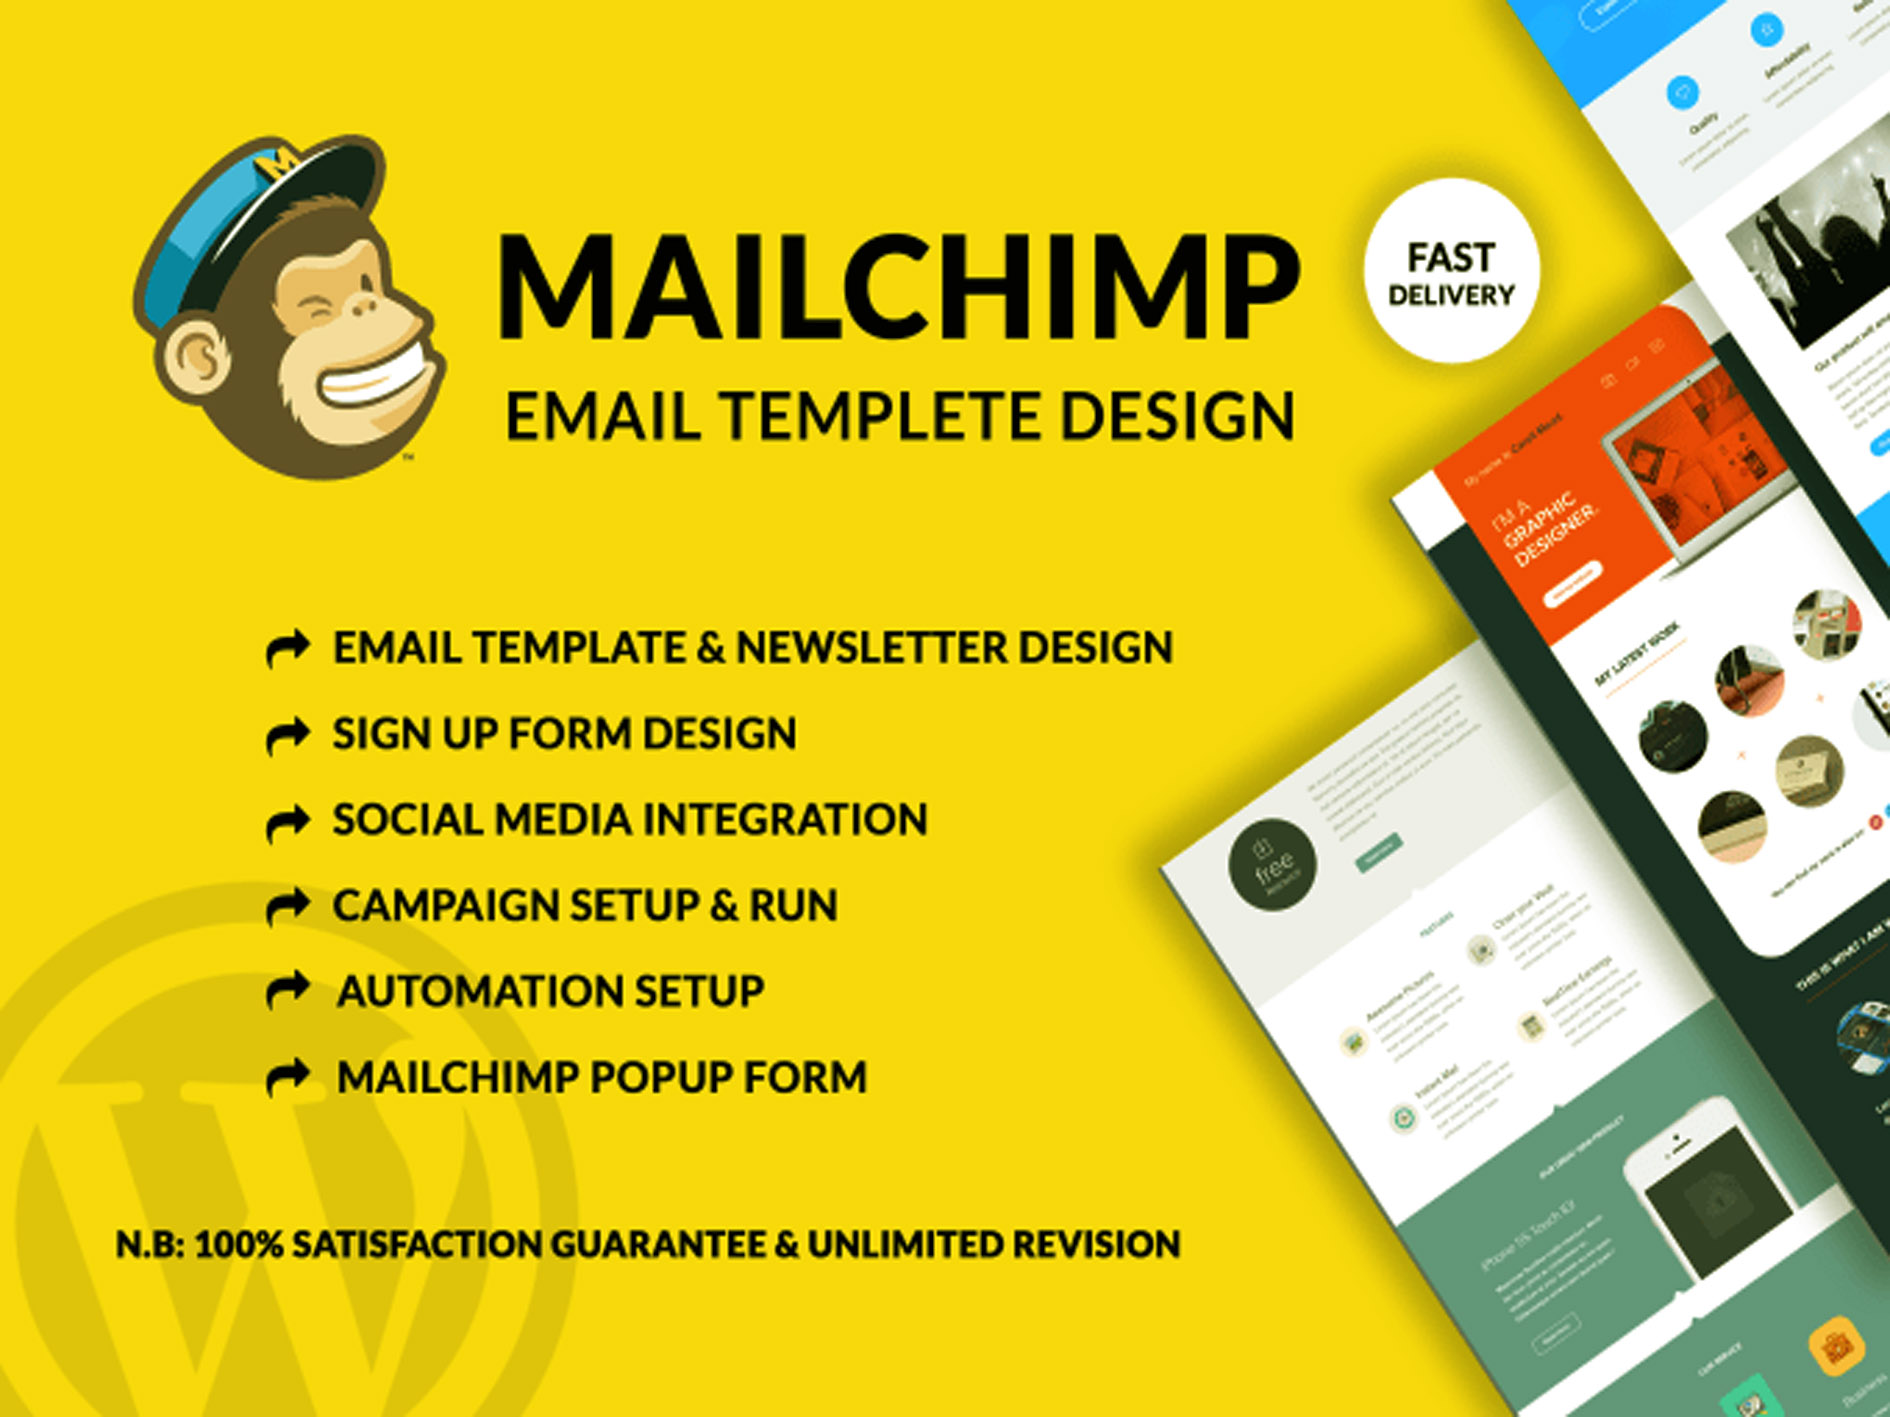 I will do creative mailchimp email template